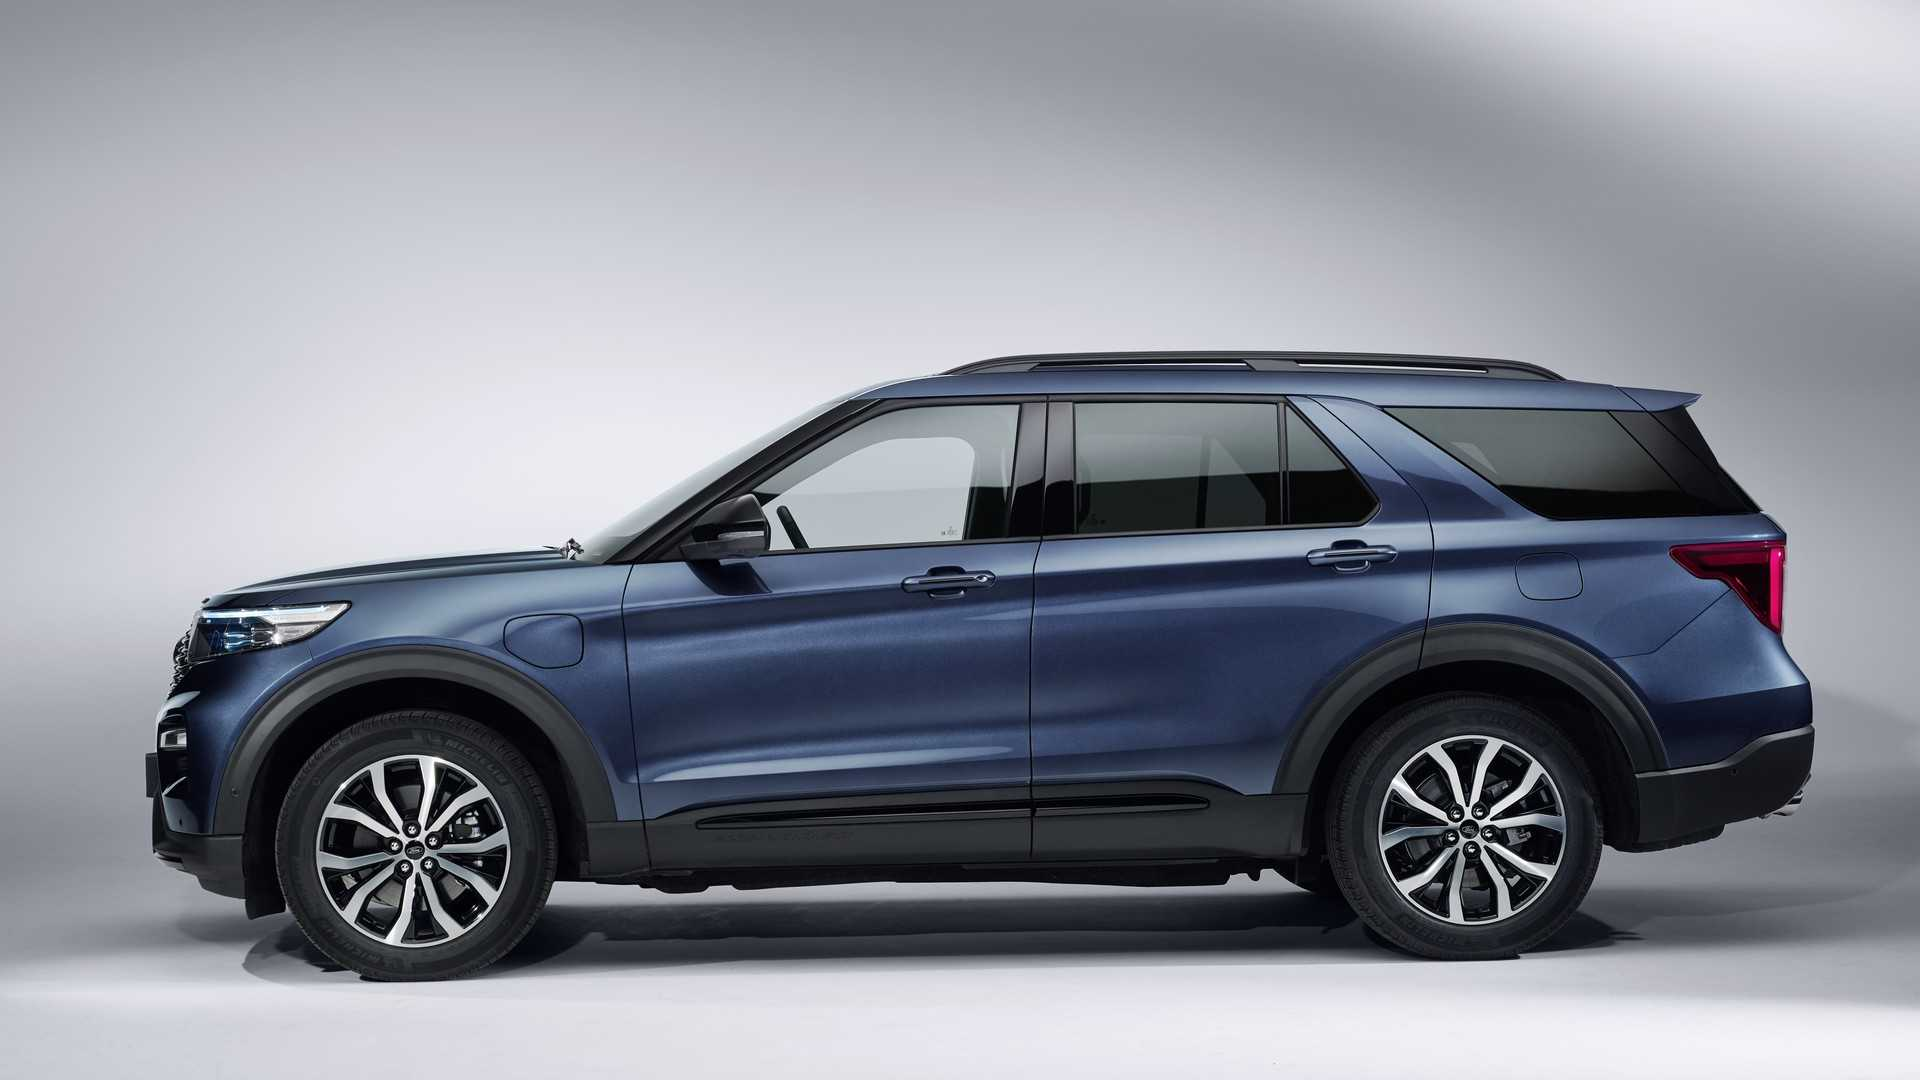 26 All New 2020 Ford Explorer Sports Release Date And Concept